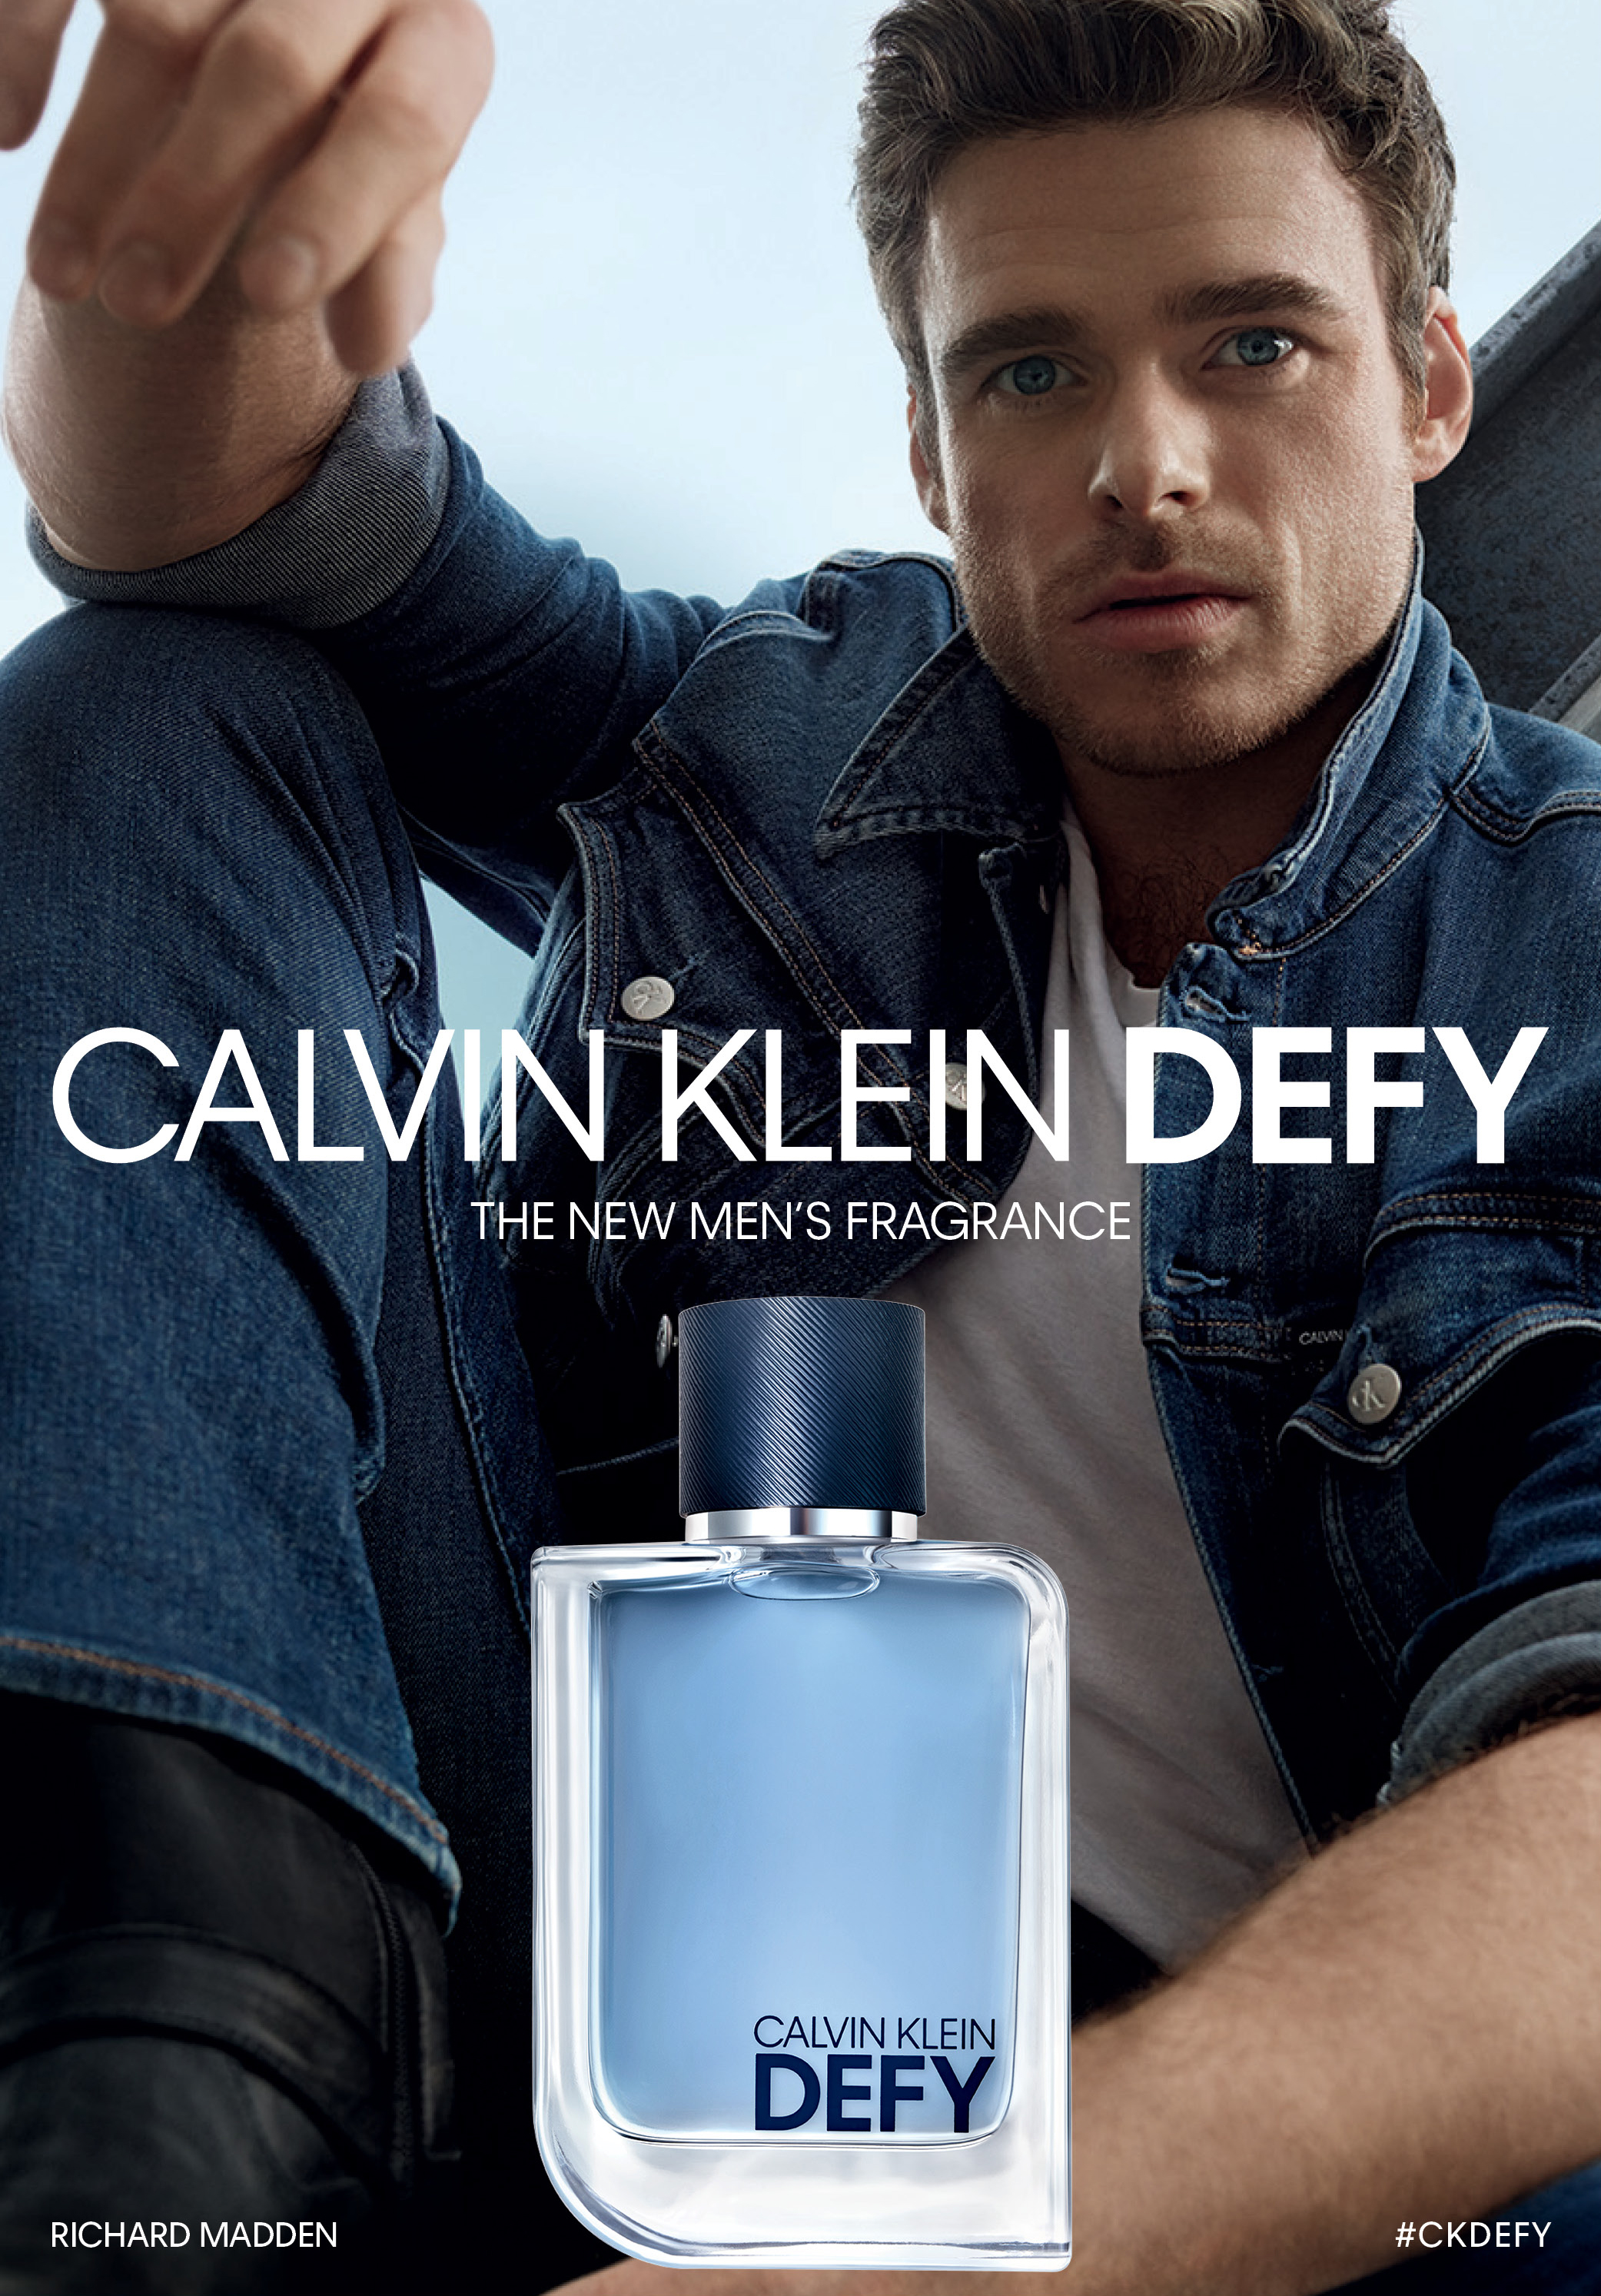 A campaign image for Calvin Klein Defy, starring the Scottish actor Richard Madden.